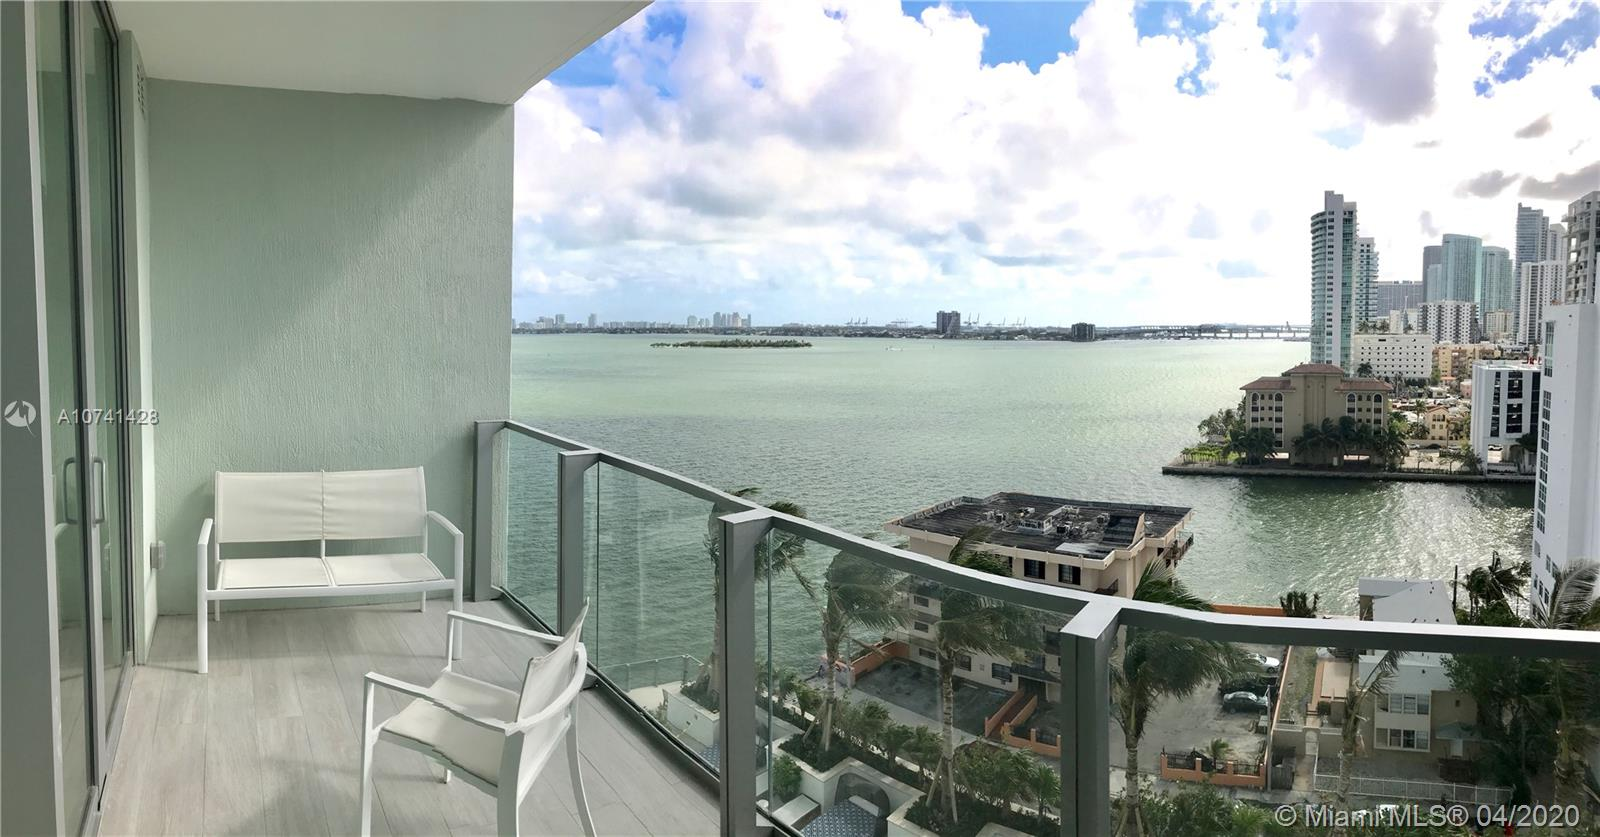 2900 NE 7th Ave #1008 For Sale A10741428, FL